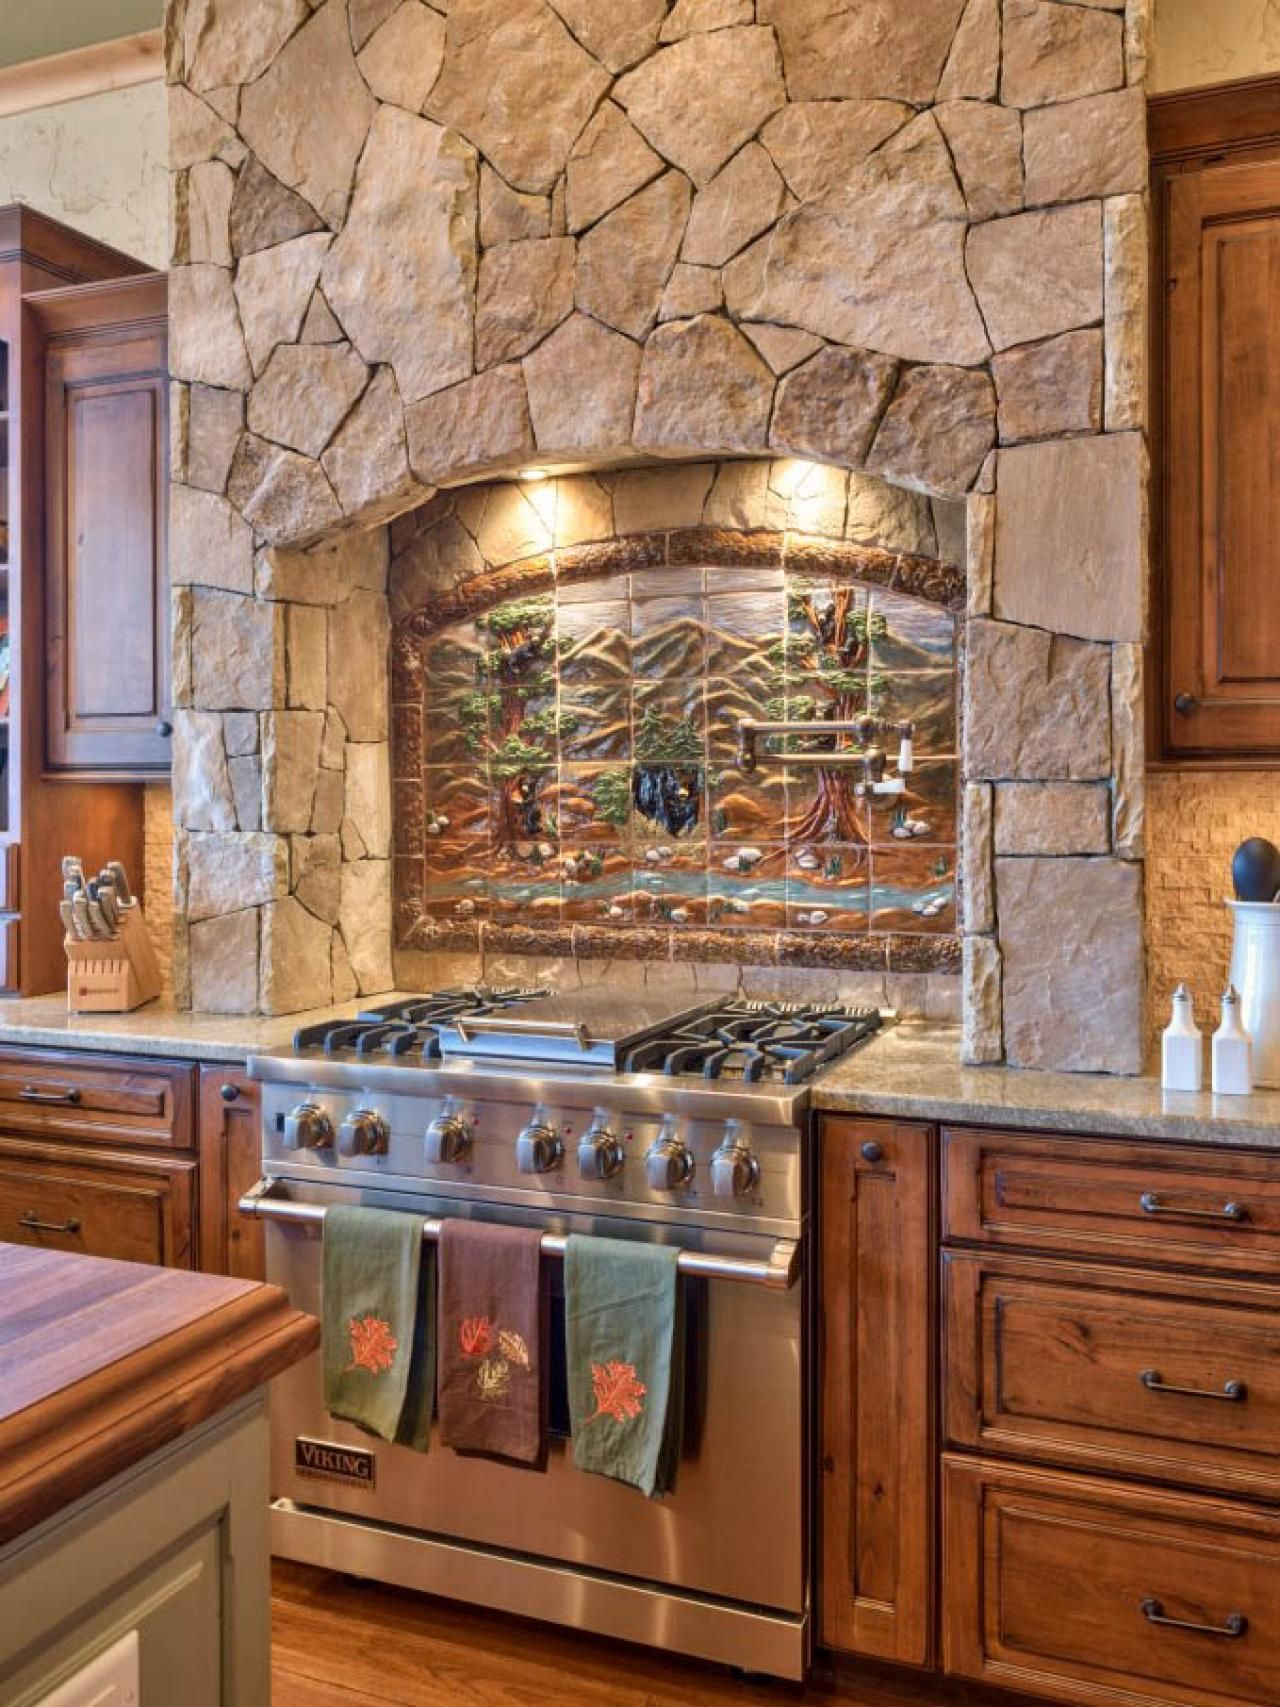 Rustic Stone Kitchen With Country Appeal | Stove, Kitchens ...